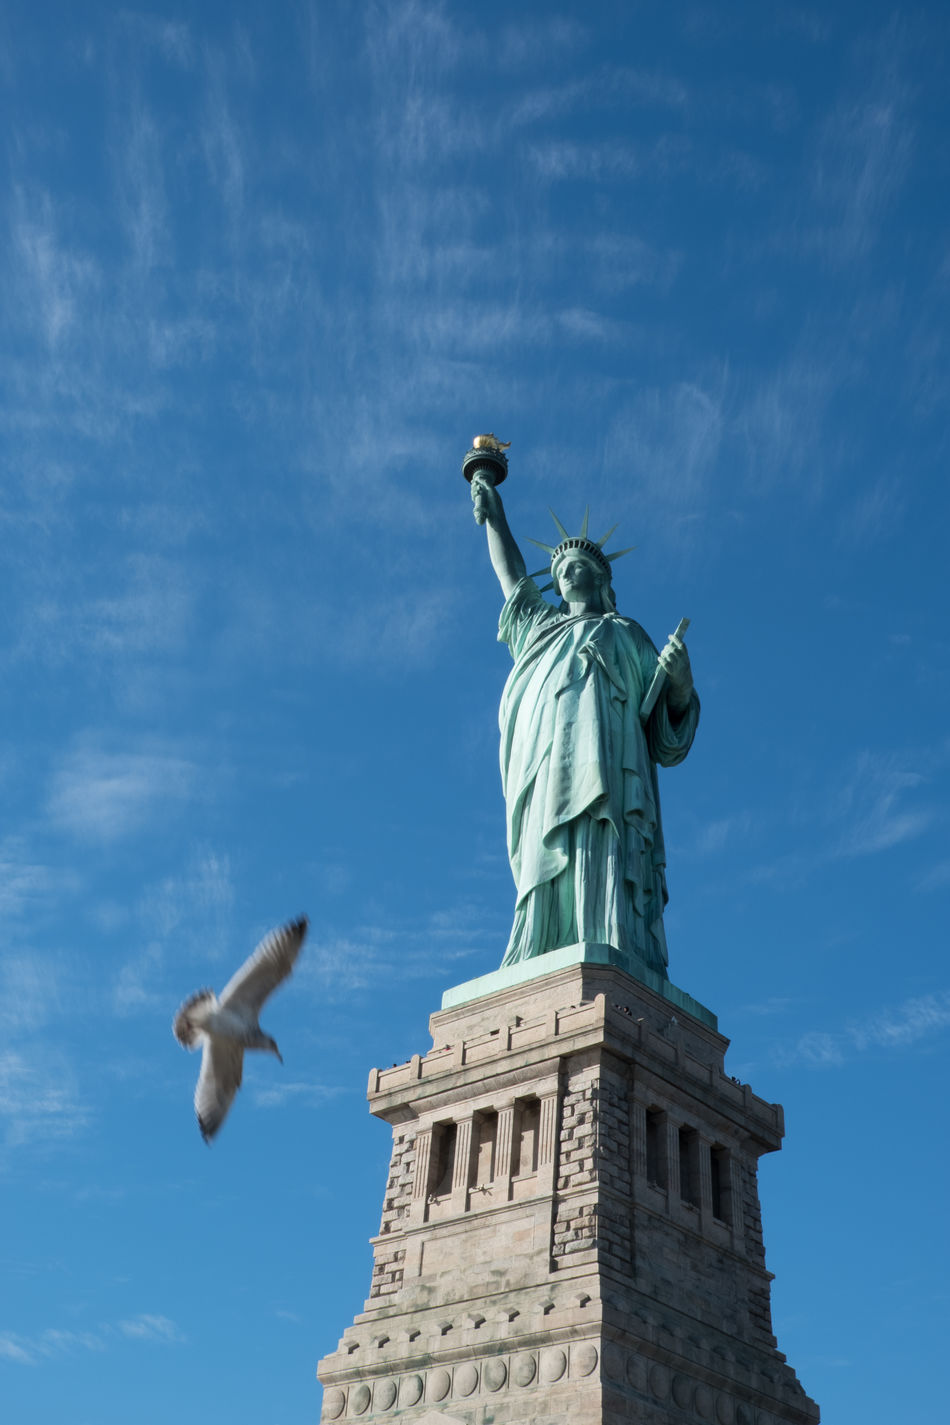 Bird flies near the Statue of Liberty, isolated, on her pedestal on Liberty Island on a bright sunny day New York City. One bird flying near pedestal of the Statue of Liberty. Ellis Island  Ellis Island / Statue Of Liberty Liberty Island Liberty Island Ferry New York New York City New York ❤ New York, New York Outdoors Sky Statue Statue Of Liberty Statue Of Liberty New York Travel Destinations